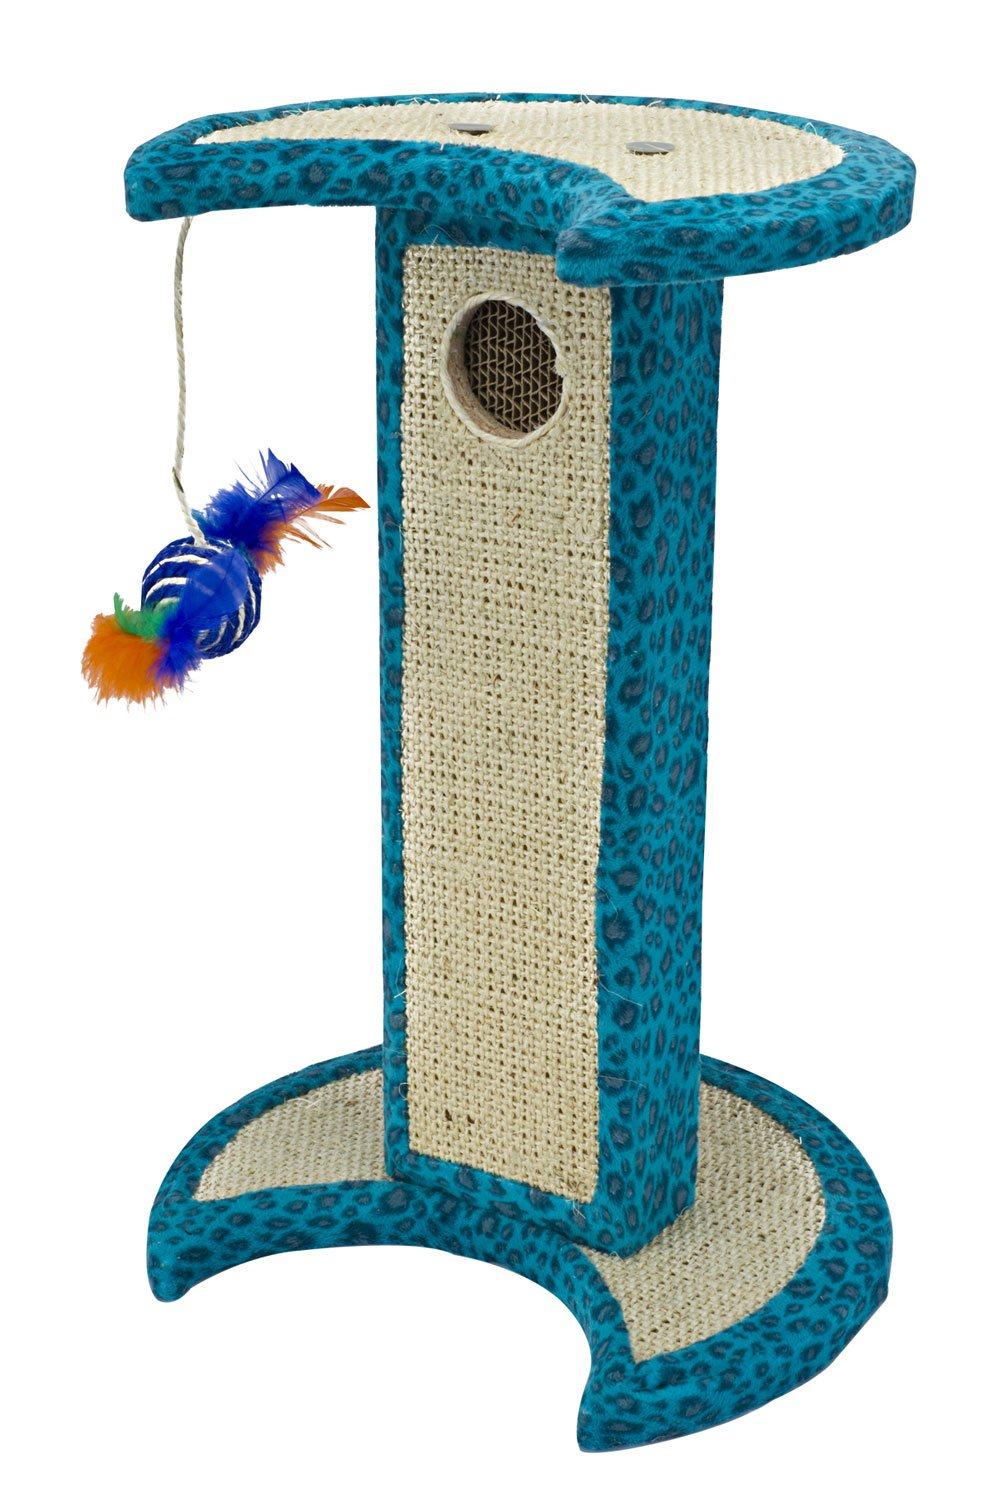 Penn Plax CATF38 Blue Jungle Cat Scratcher Cat Sisal Scratching Post - 18 in. Crescent Moon Tower B0097GY7IO